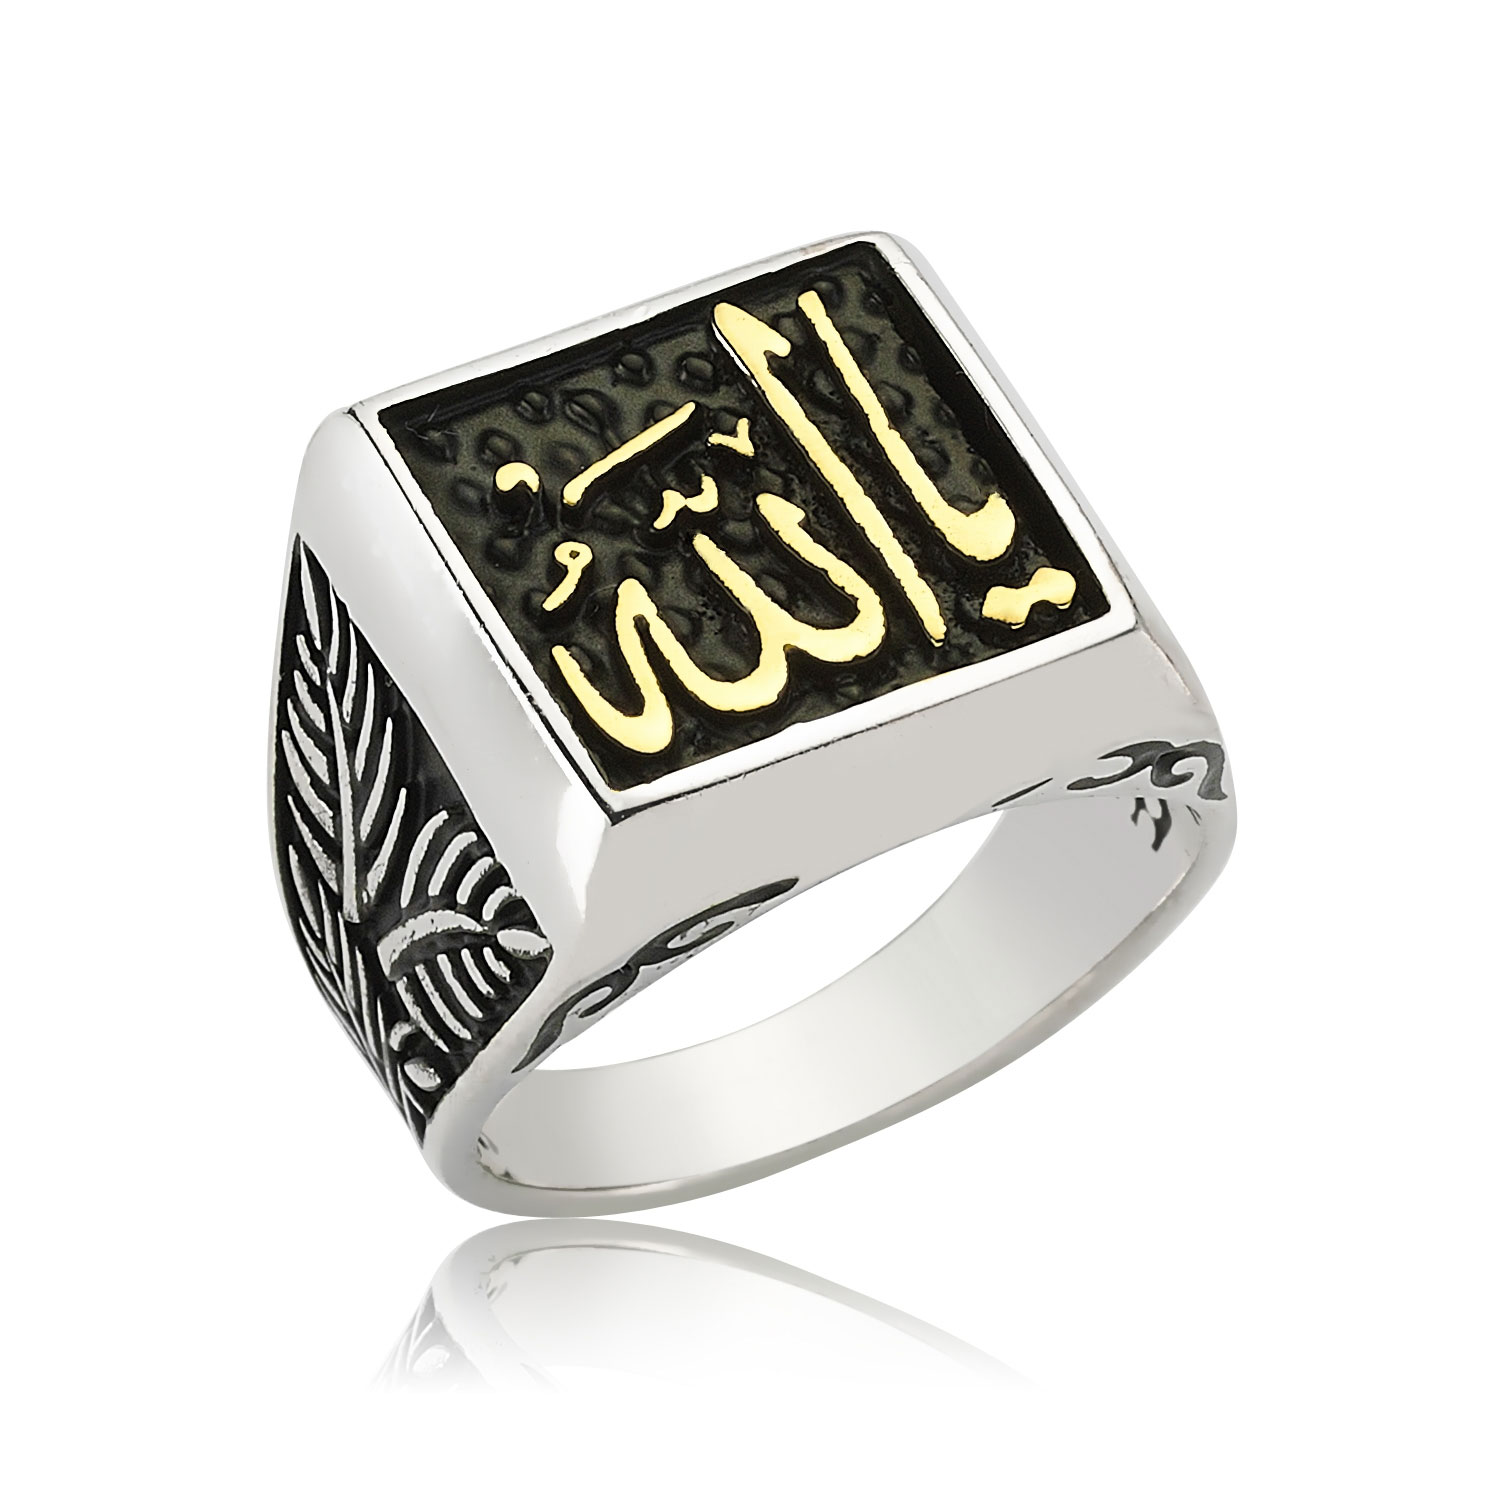 Ya Allah Islamic Men Ring IslamicJewelryorgIslamic Jewelry Store